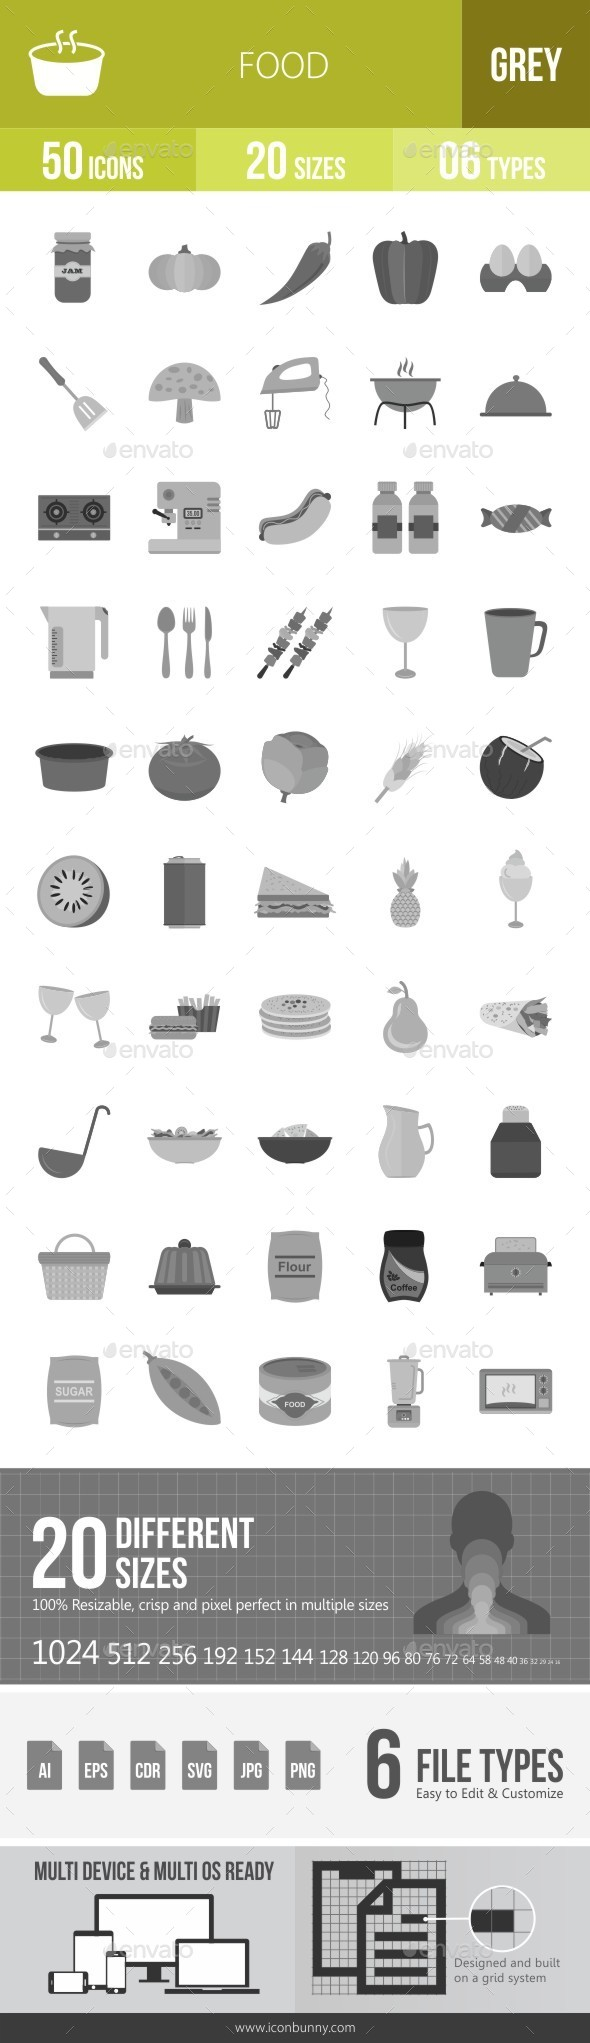 Food Greyscale Icons - Icons